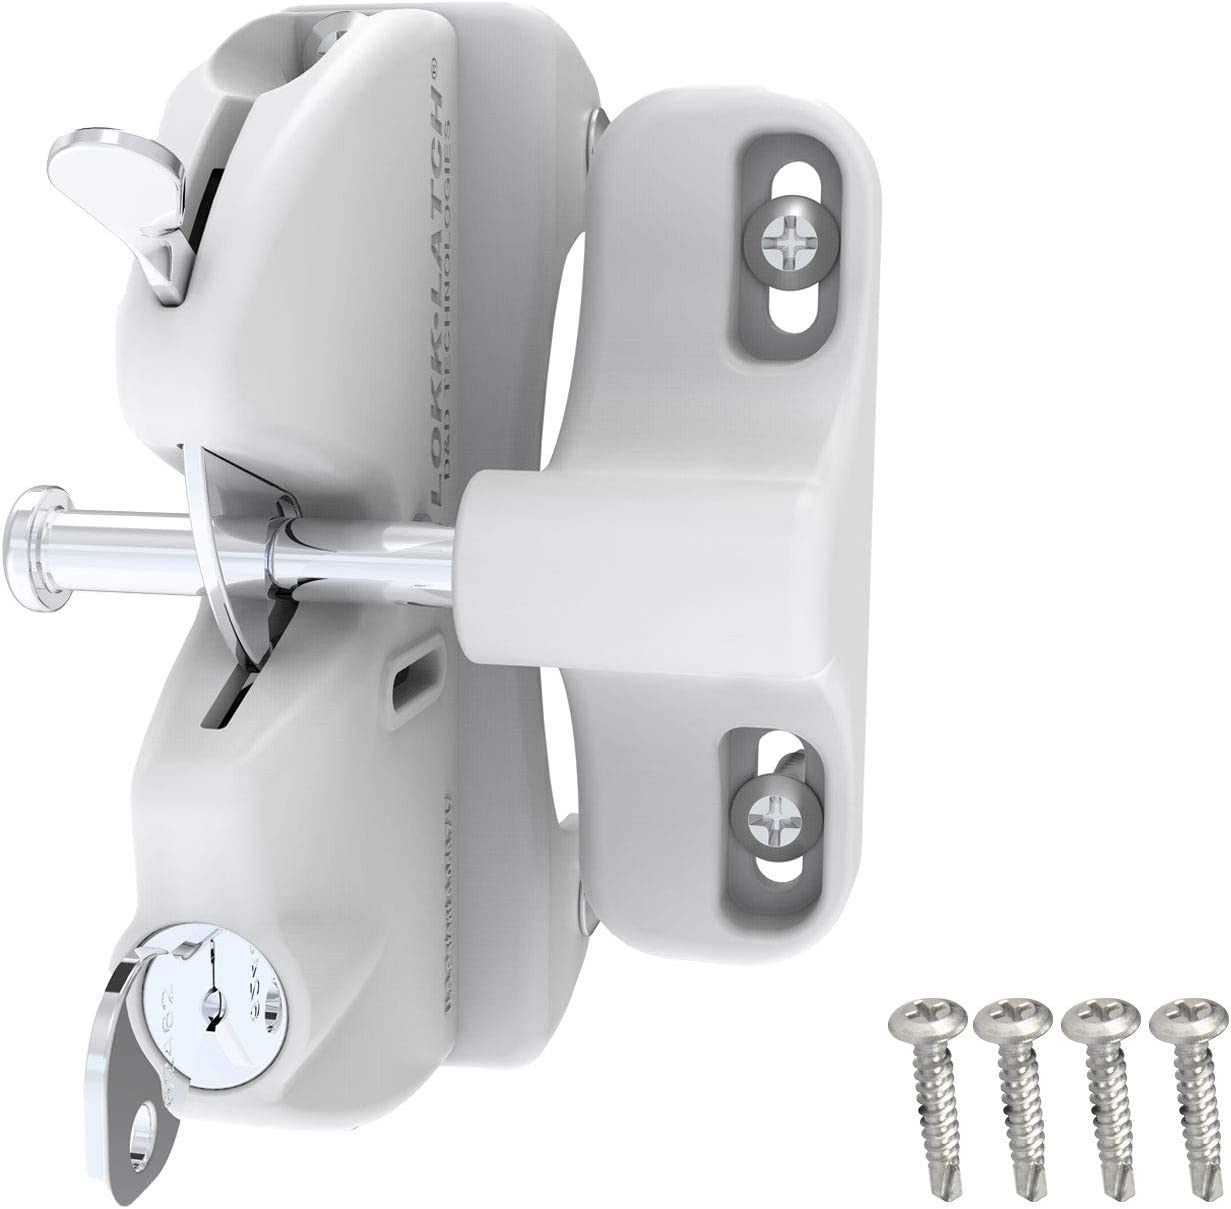 D&D Technologies LLAAW LokkLatch, Locking Gate Gravity Latch, Key Lockable on One Side of Gate, for Metal, Wood, and Vinyl Fences, White